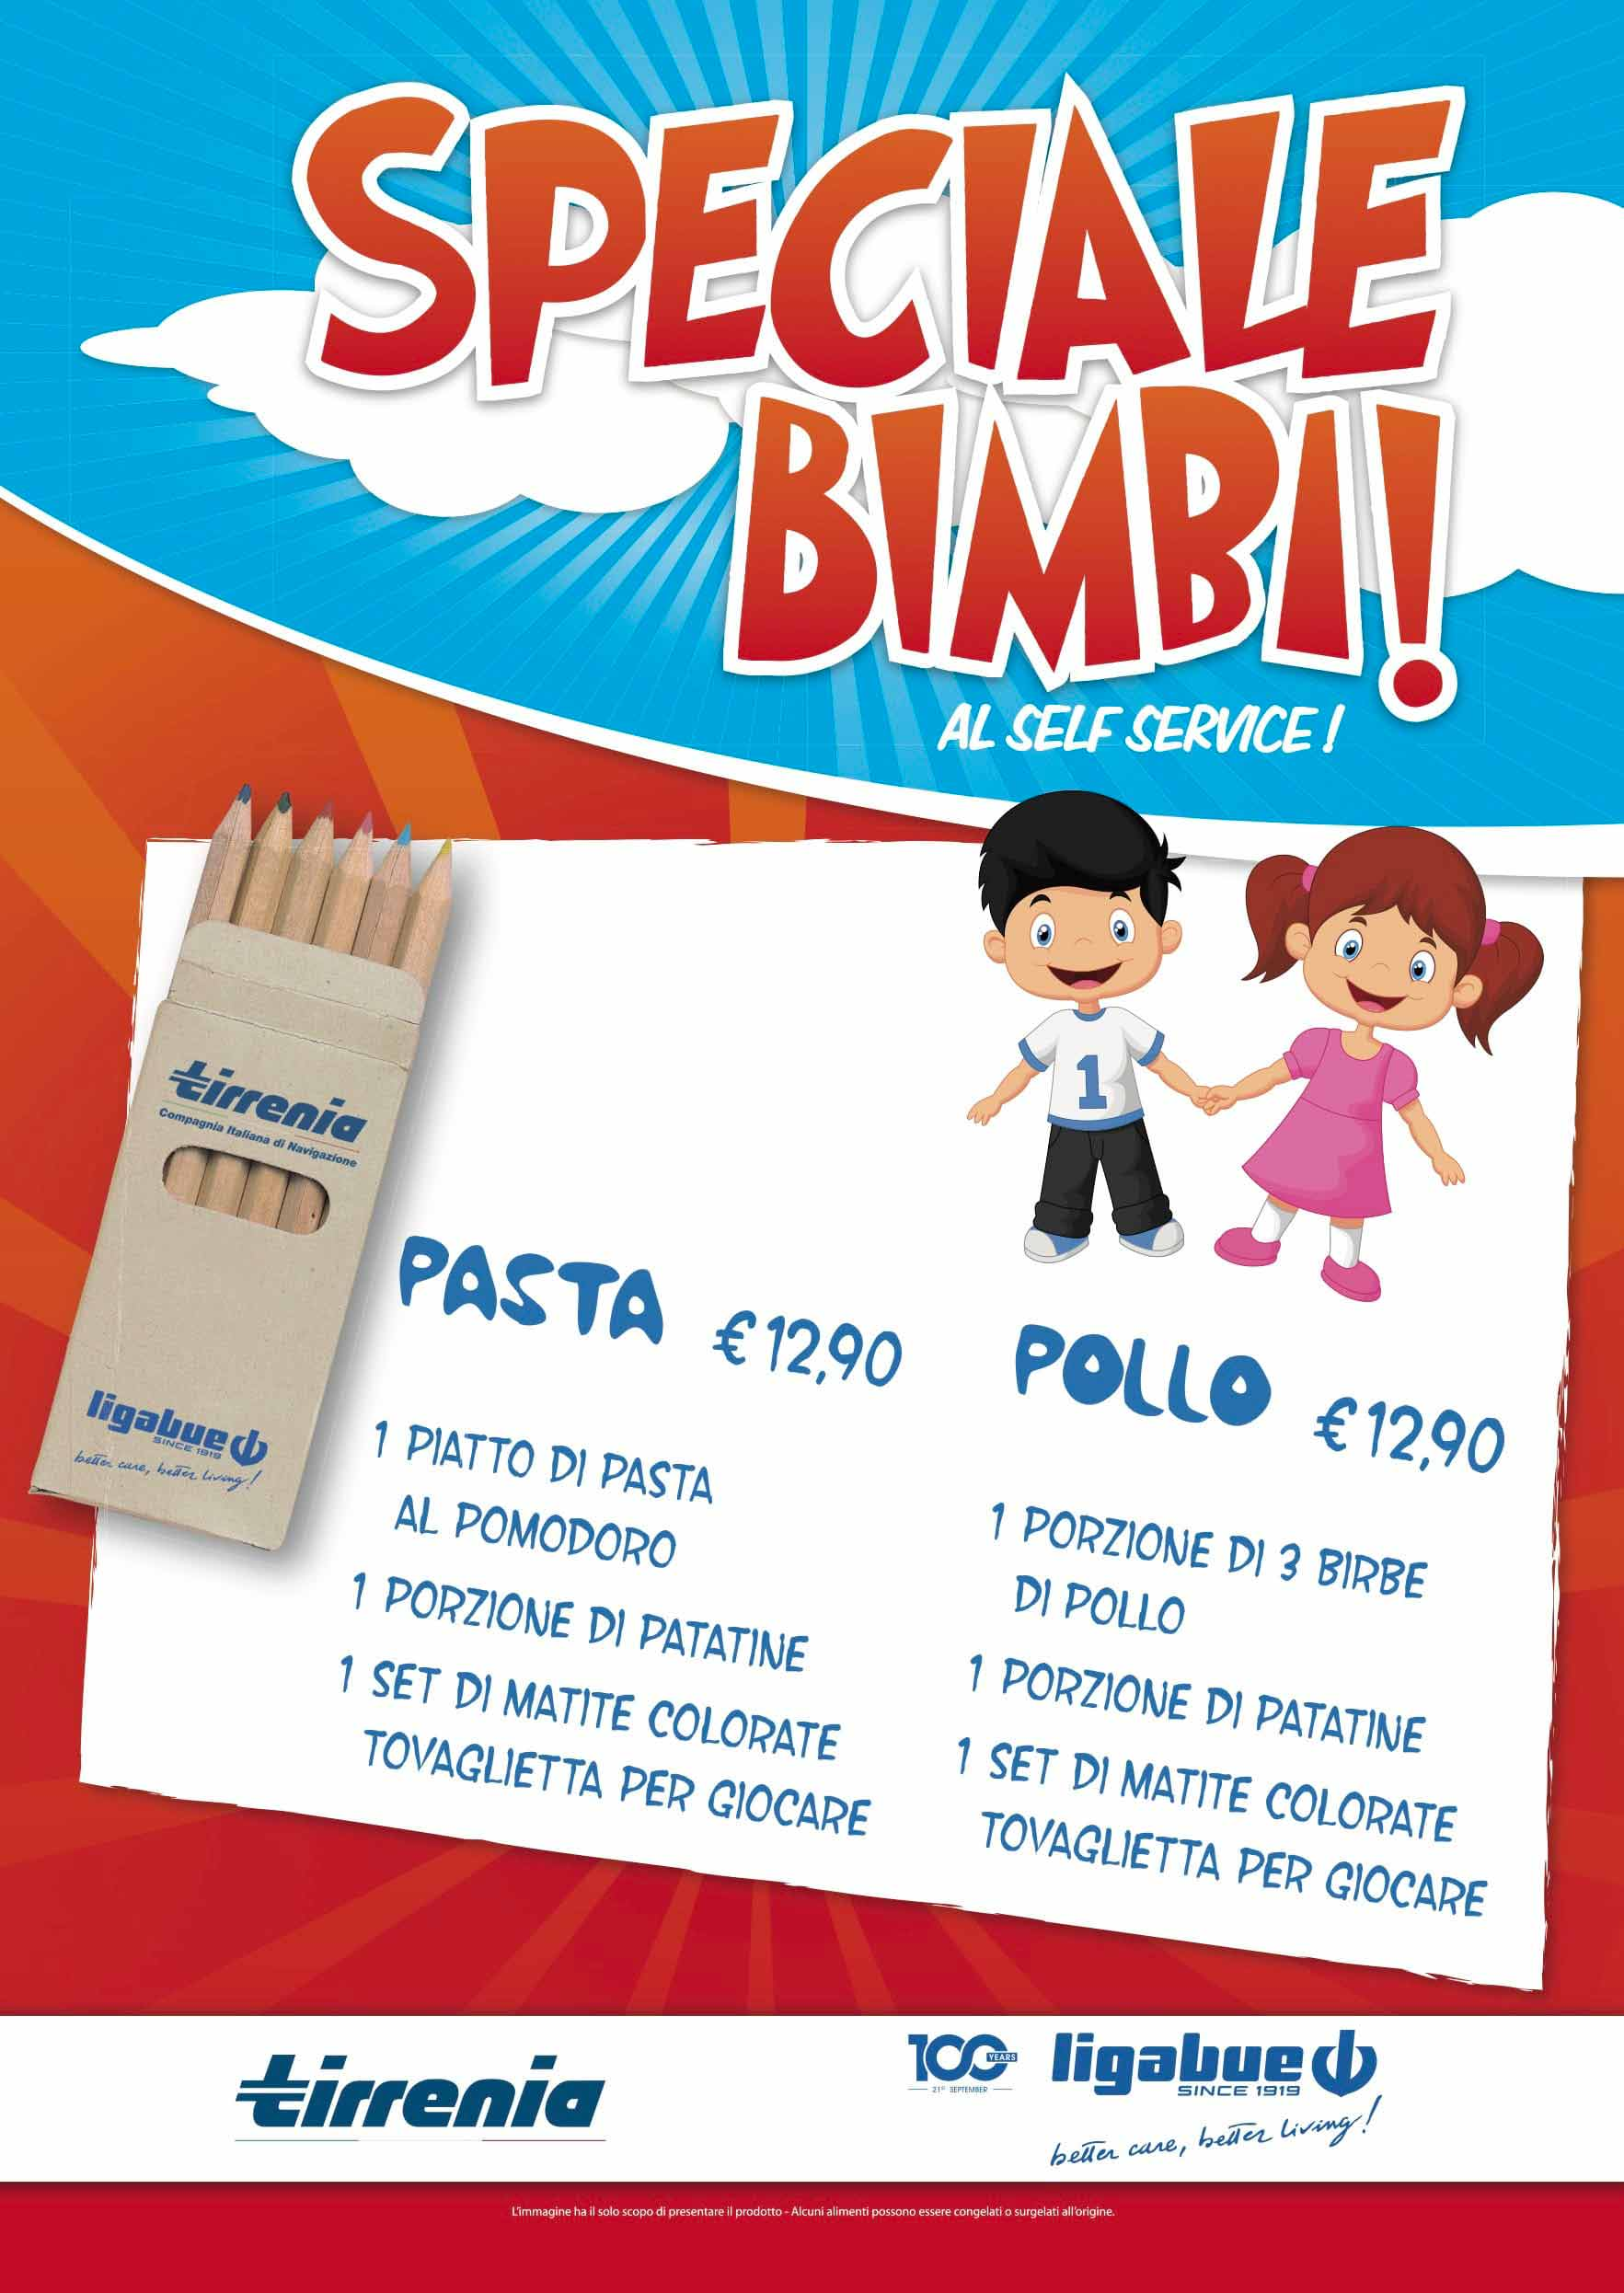 tirrenia menu self service per bambini